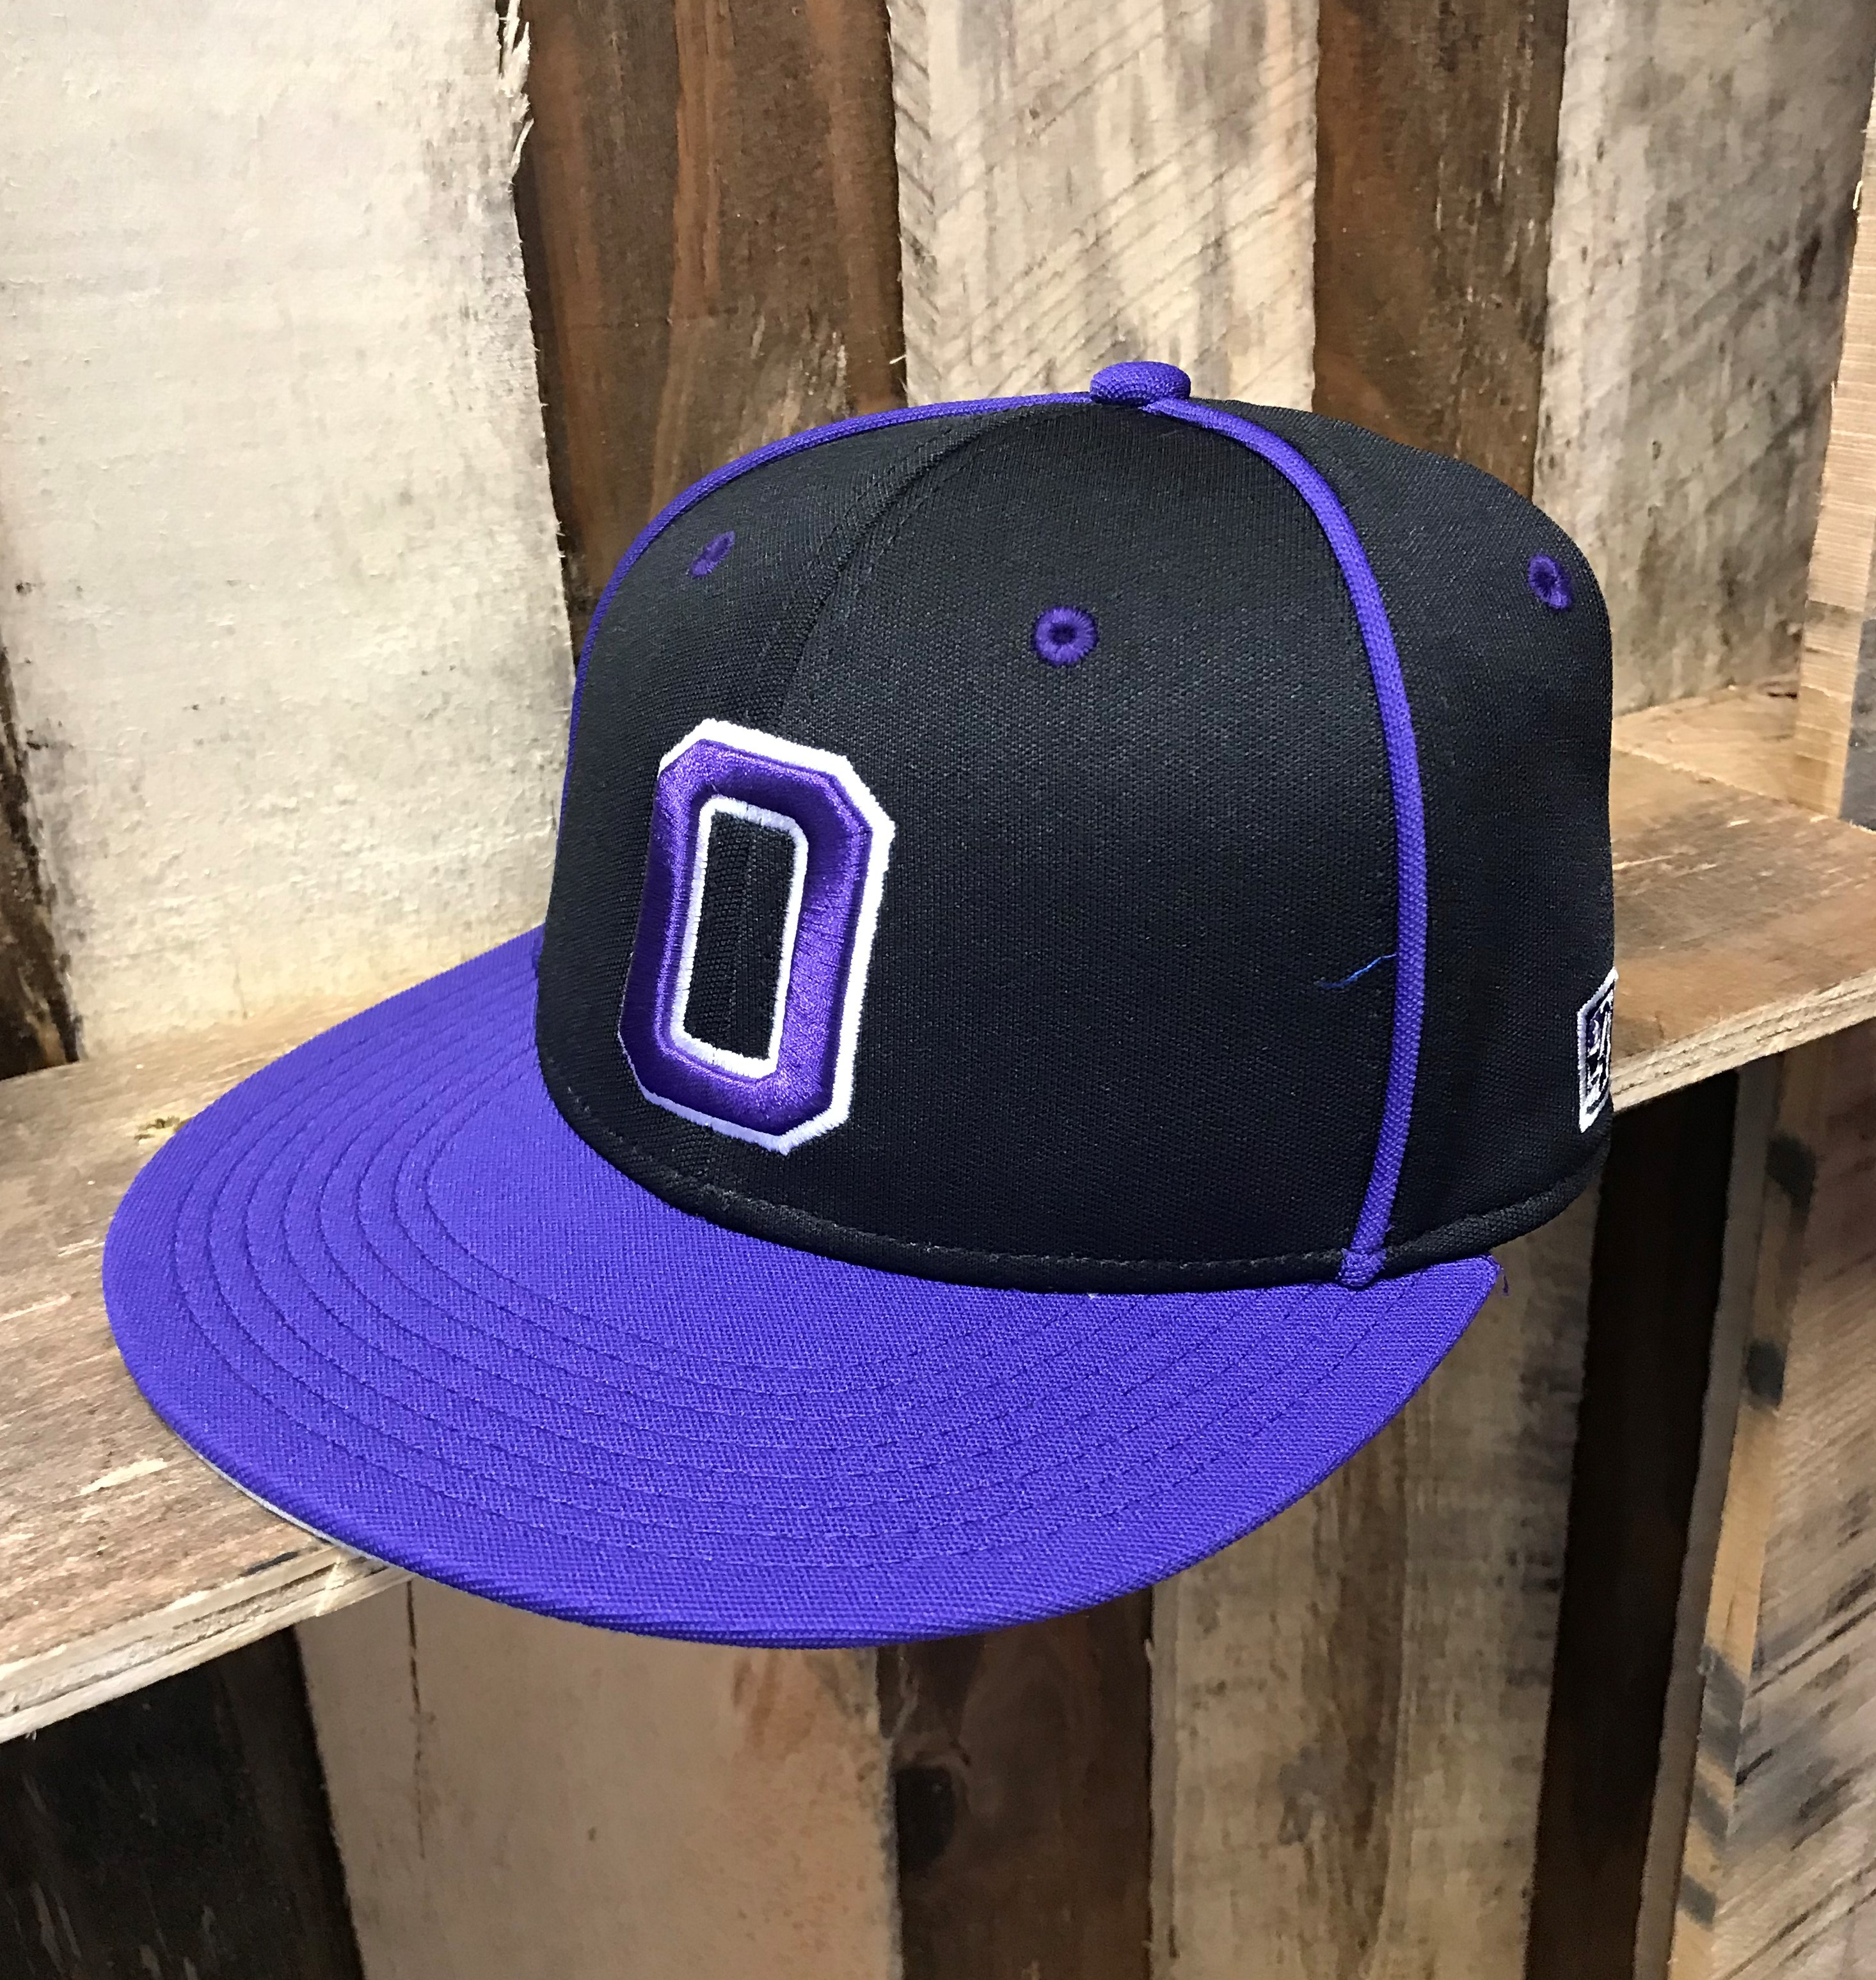 OUACHITA 'O' BASEBALL HAT